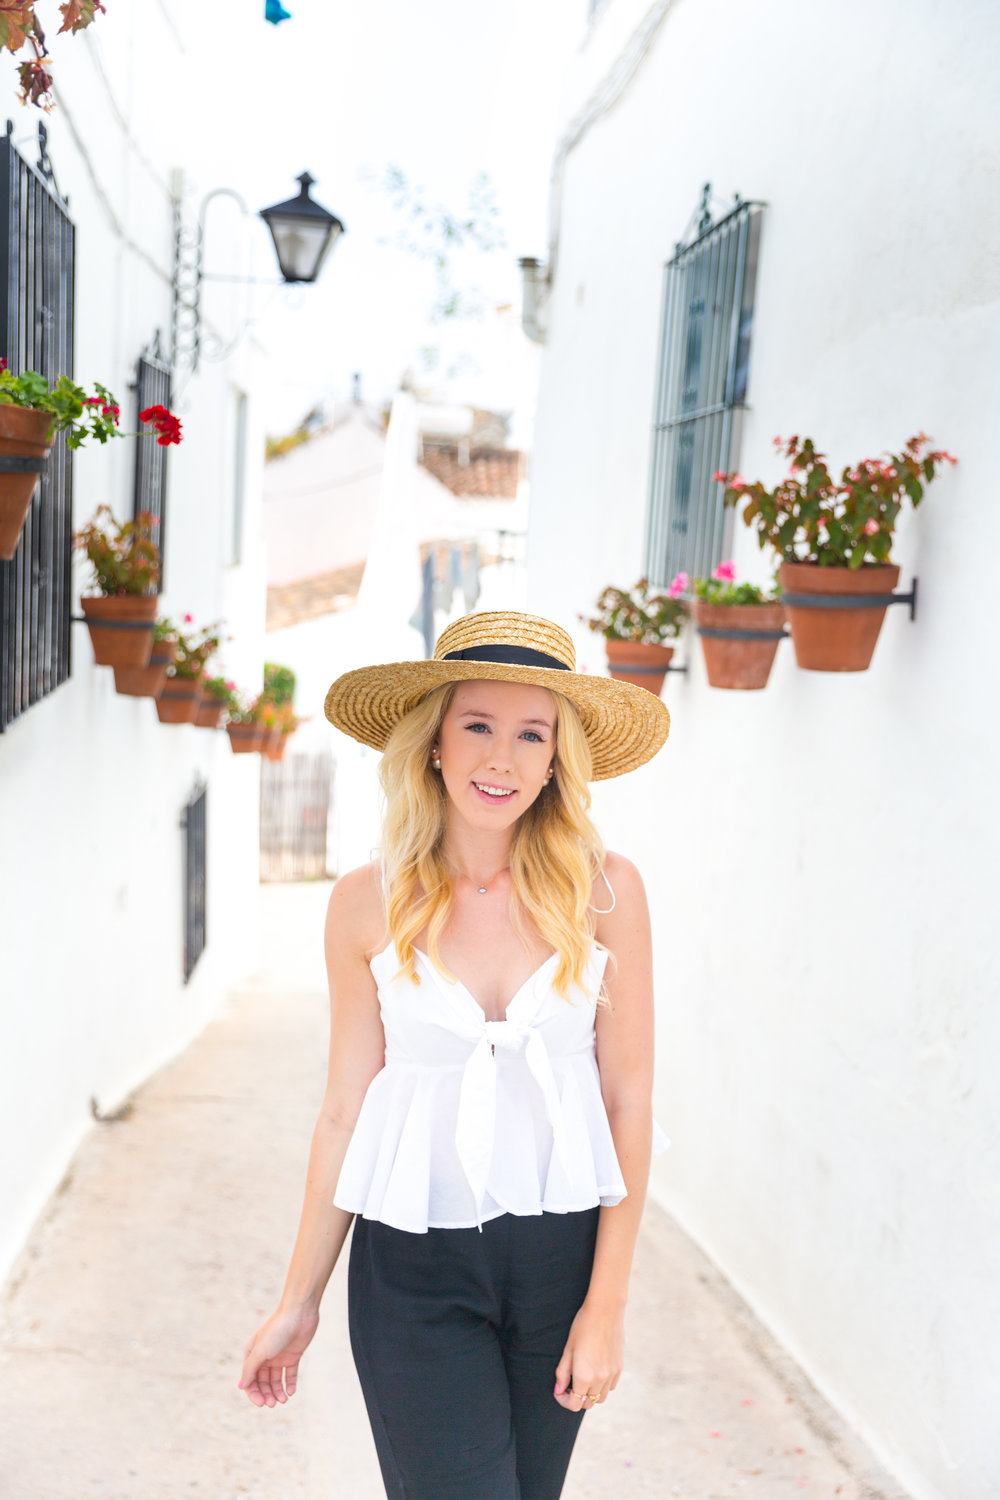 Spain Mijas Malaga Black and White Summer Fashion Flare-5.jpg